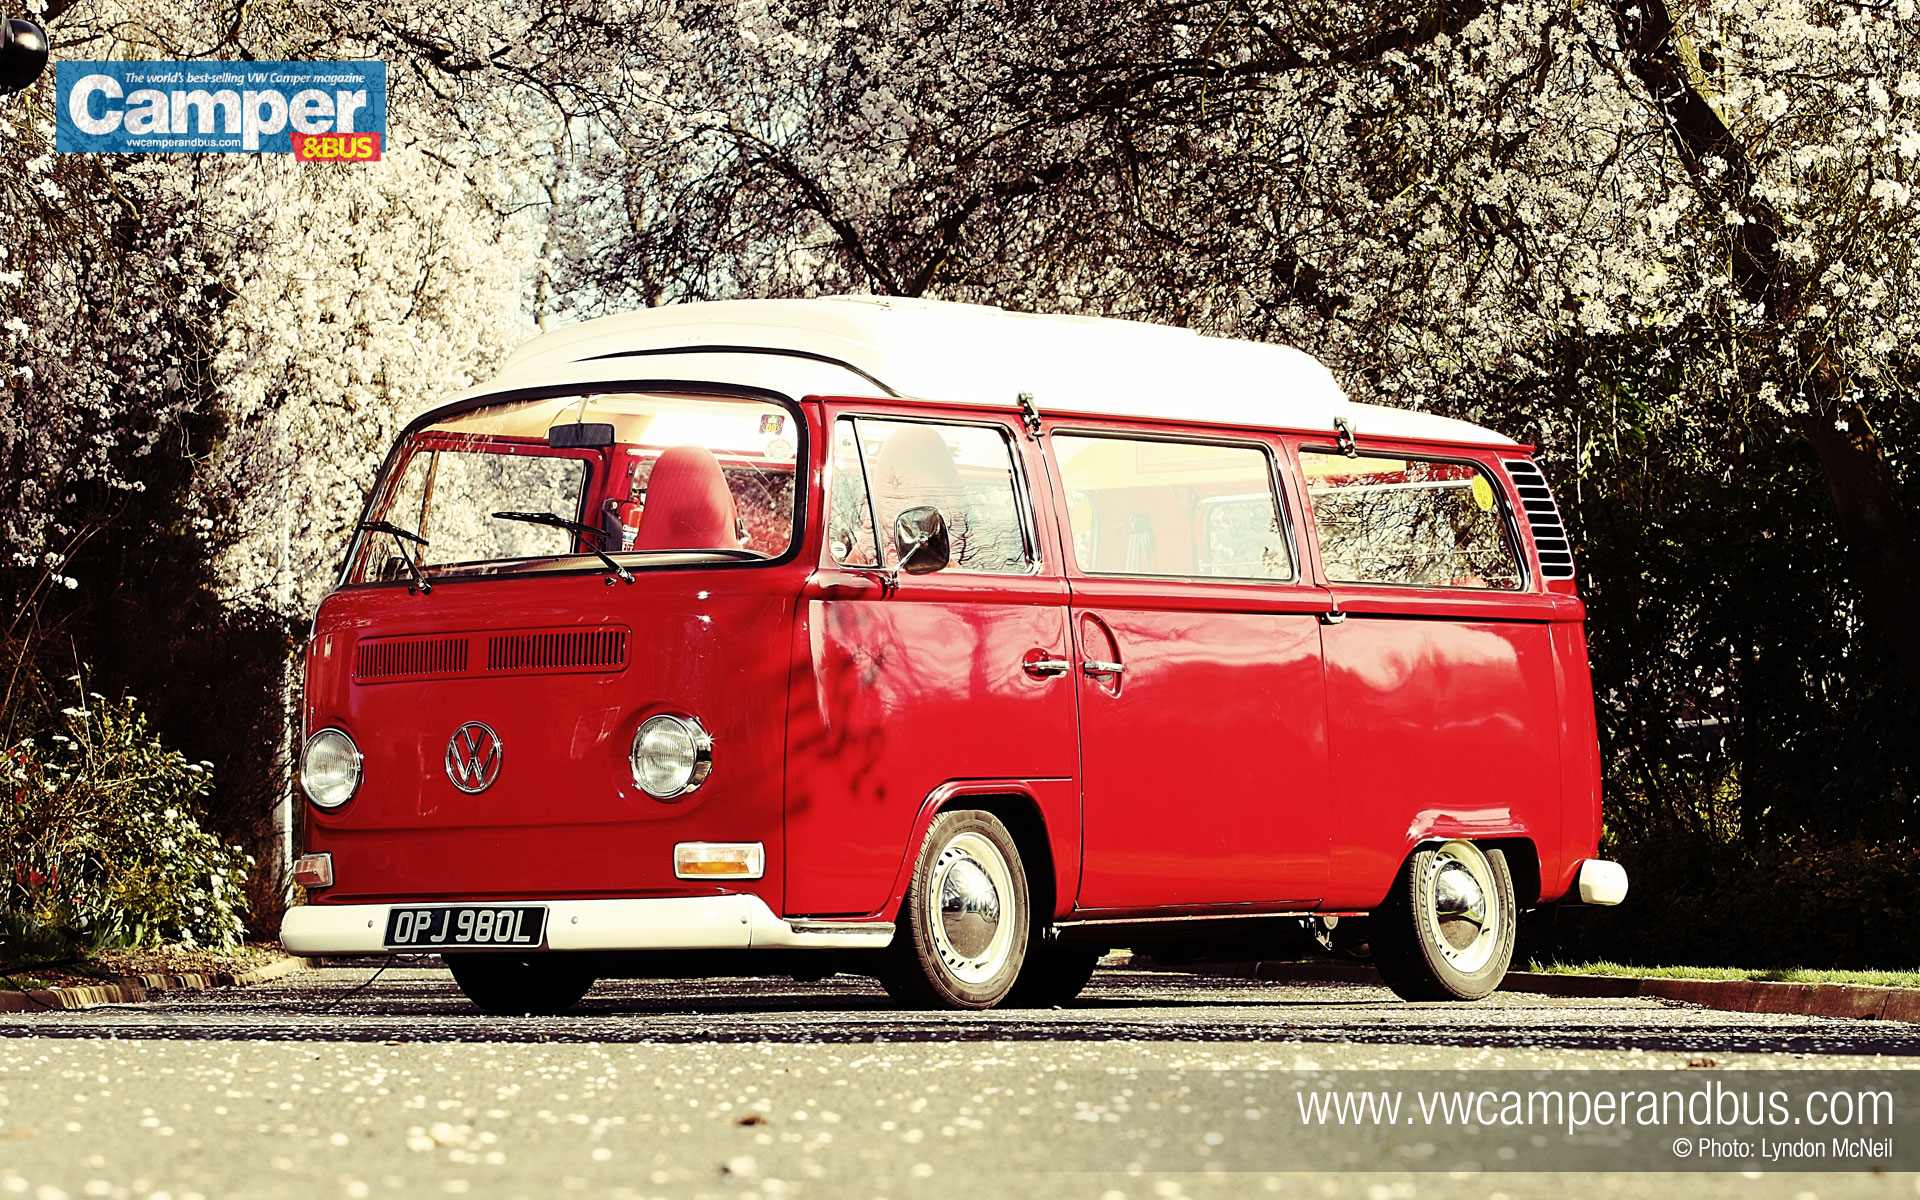 Campervan Wallpaper Wallpapersafari HD Wallpapers Download Free Images Wallpaper [1000image.com]